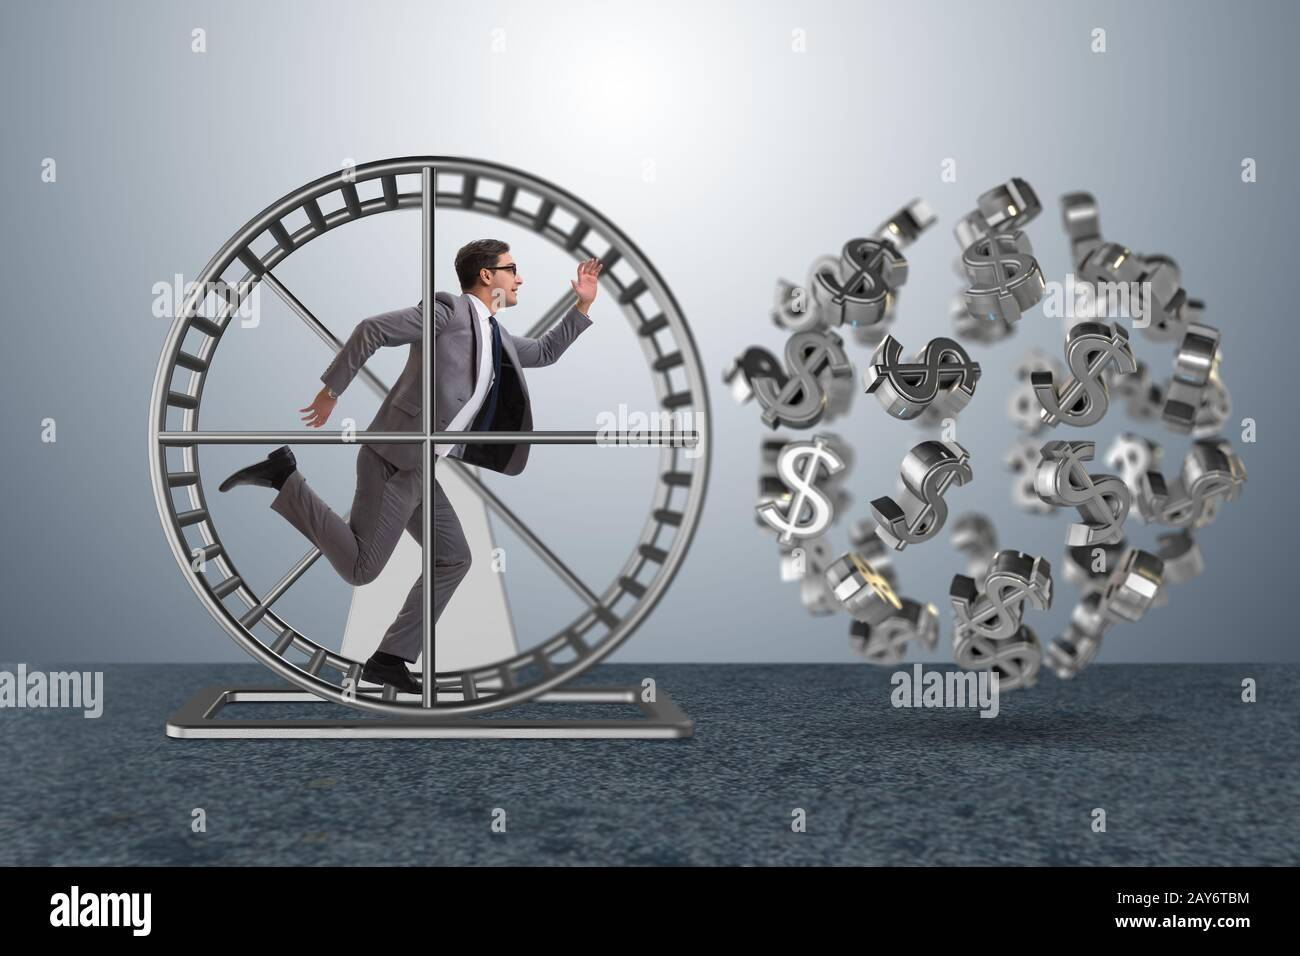 Business concept with businessman running on hamster wheel Stock Photo